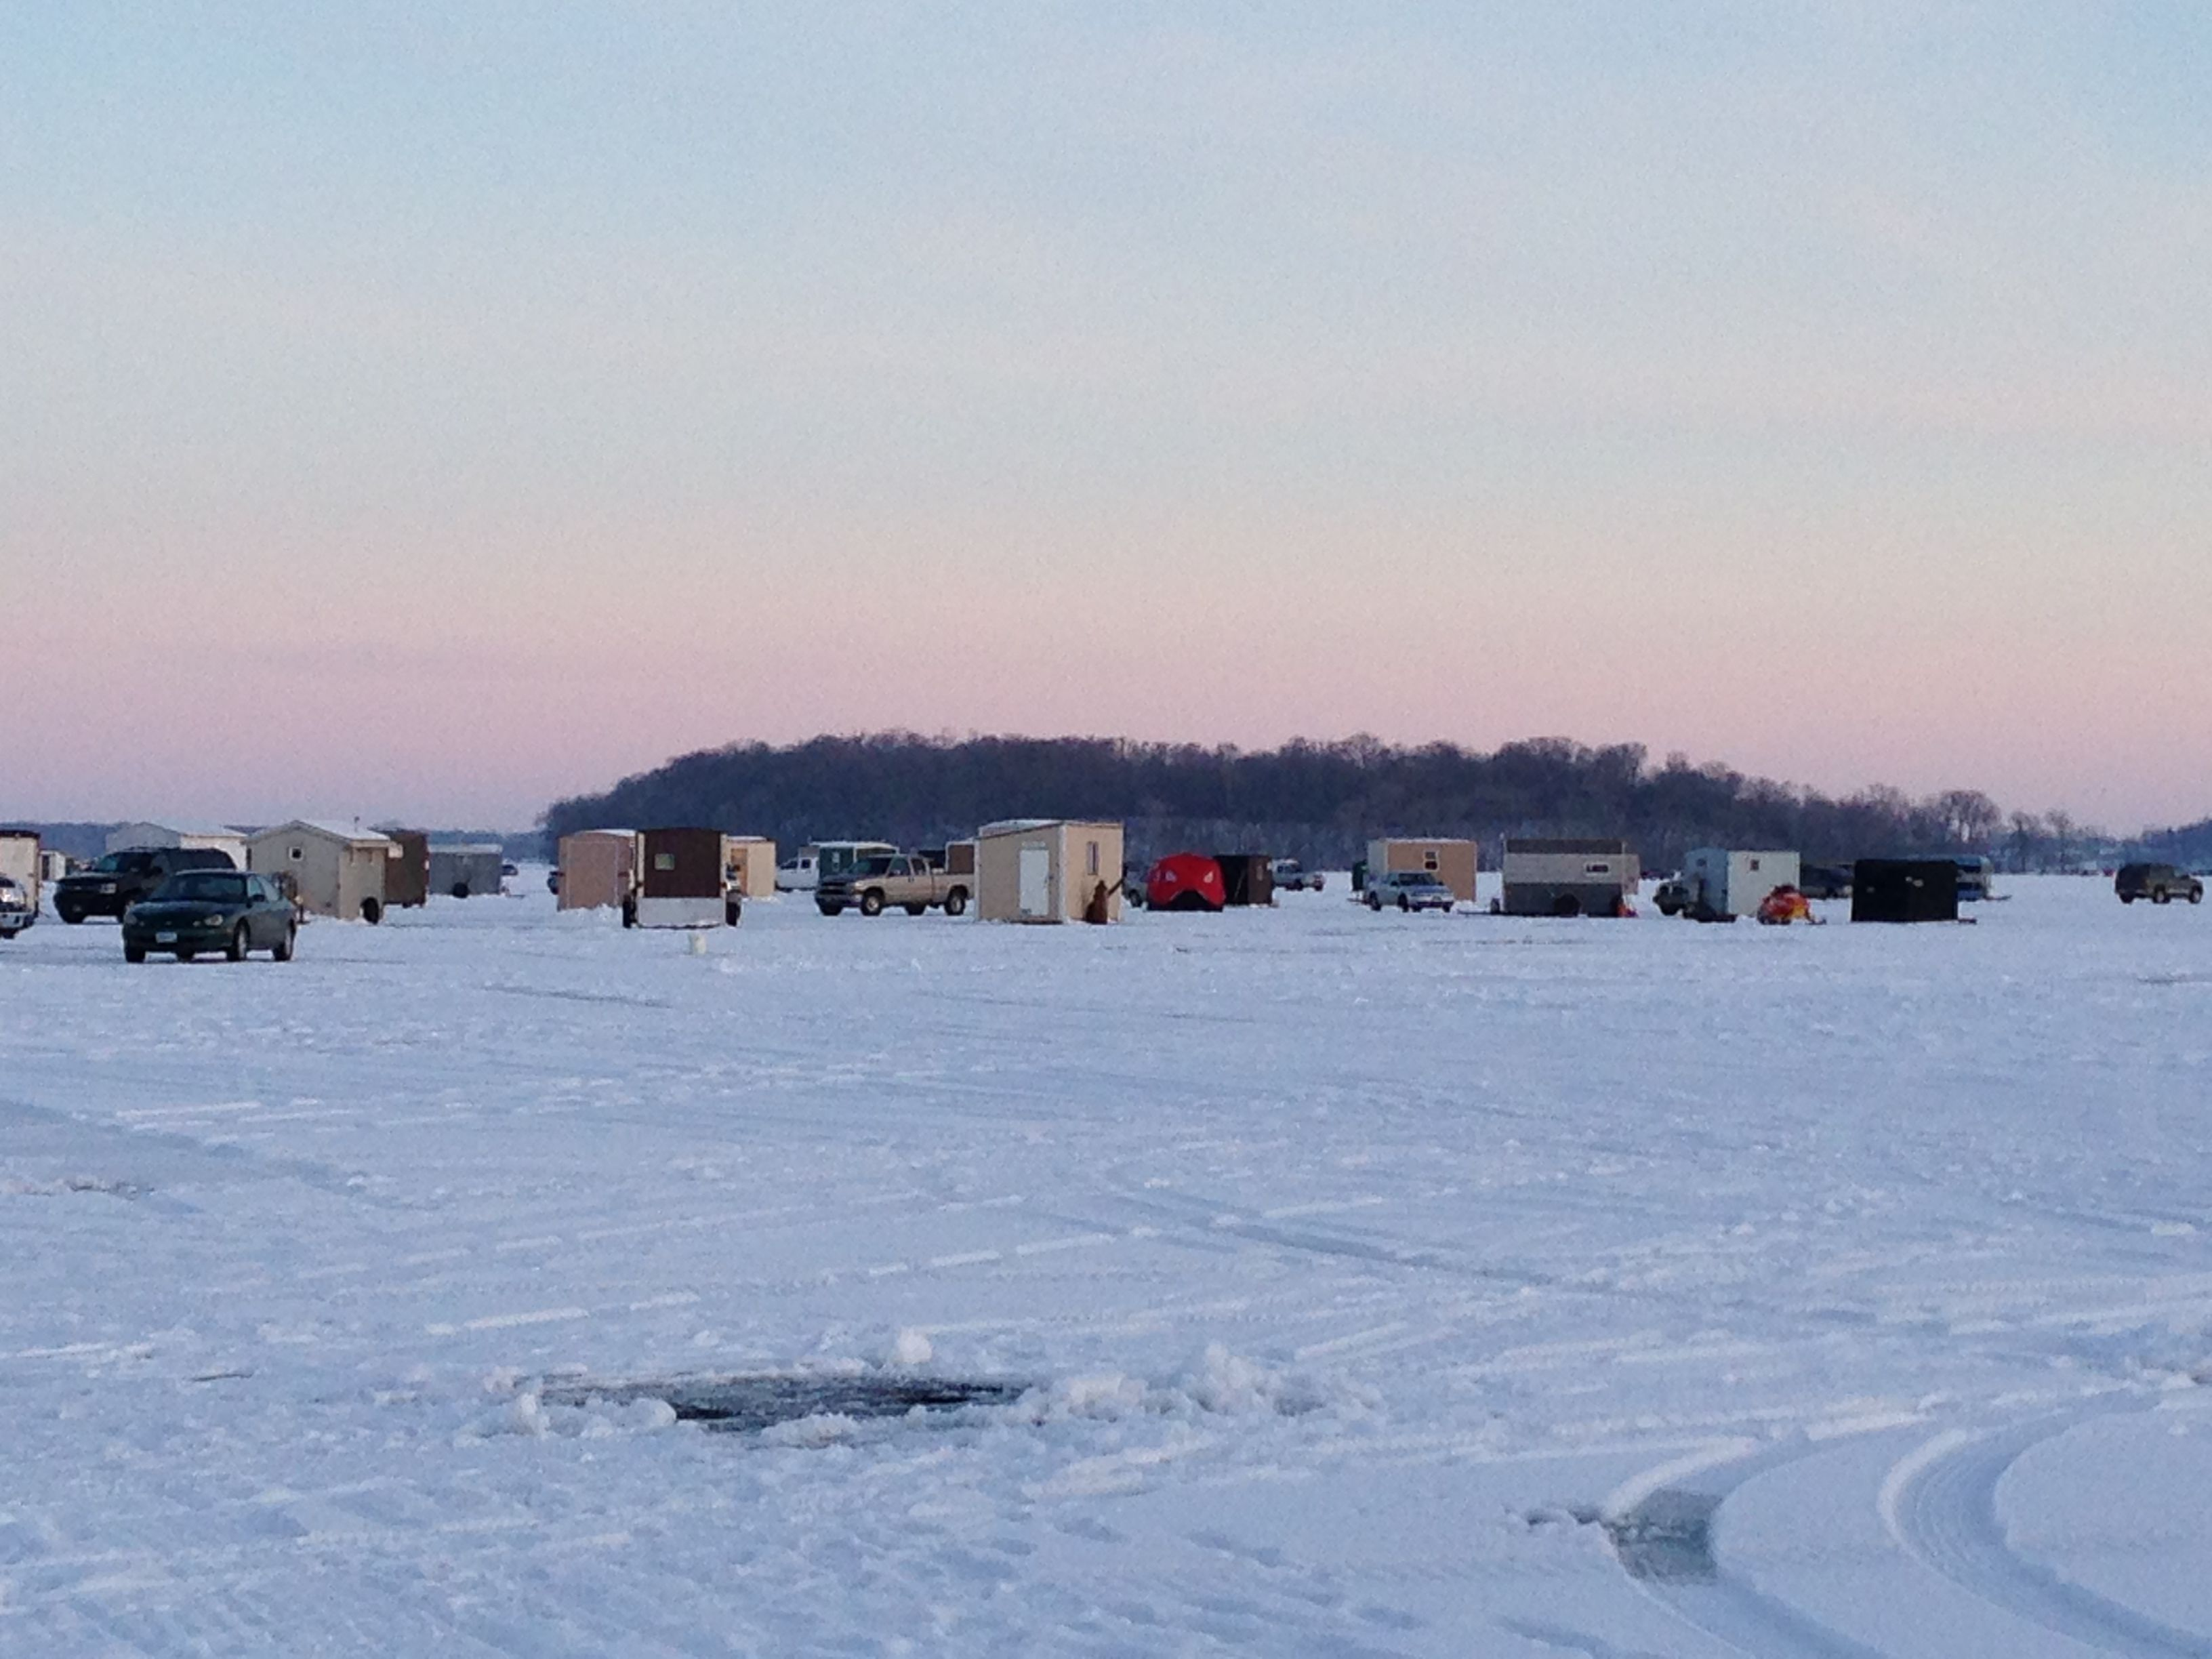 ice fishing on lake waconia minnesota 10 000 lakes